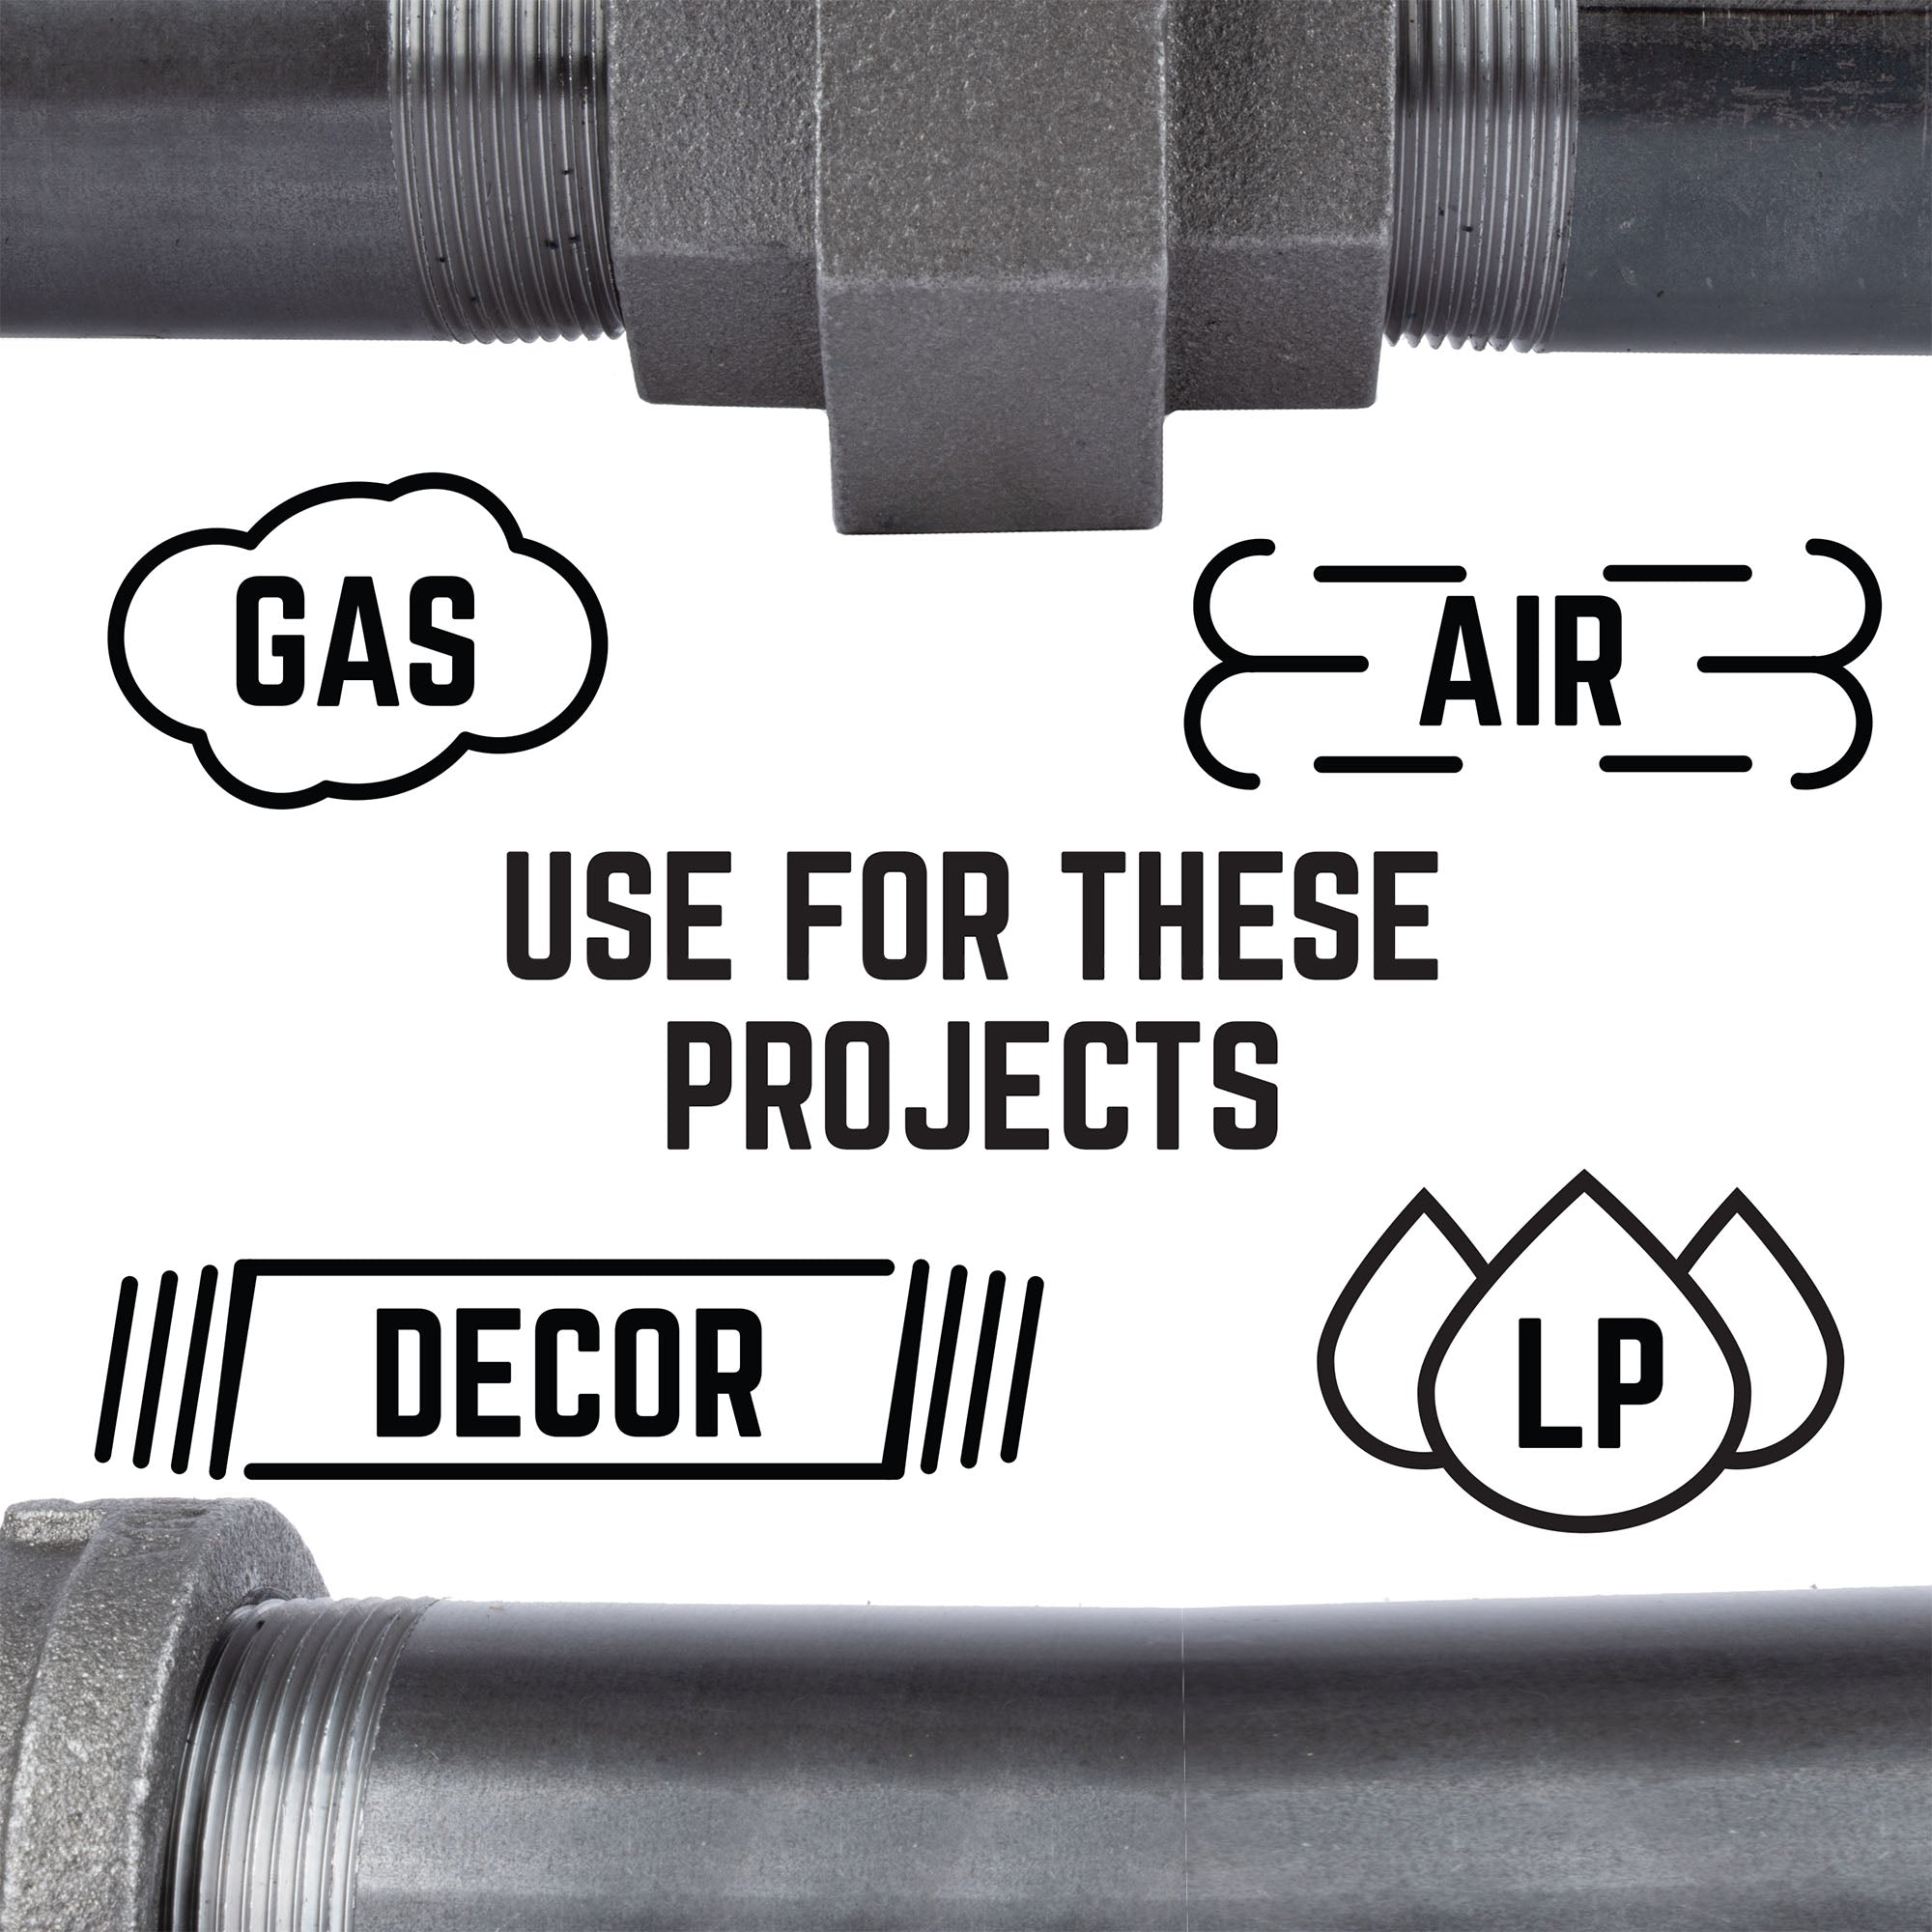 2 In Black 90 Degree Elbow - Pipe Decor